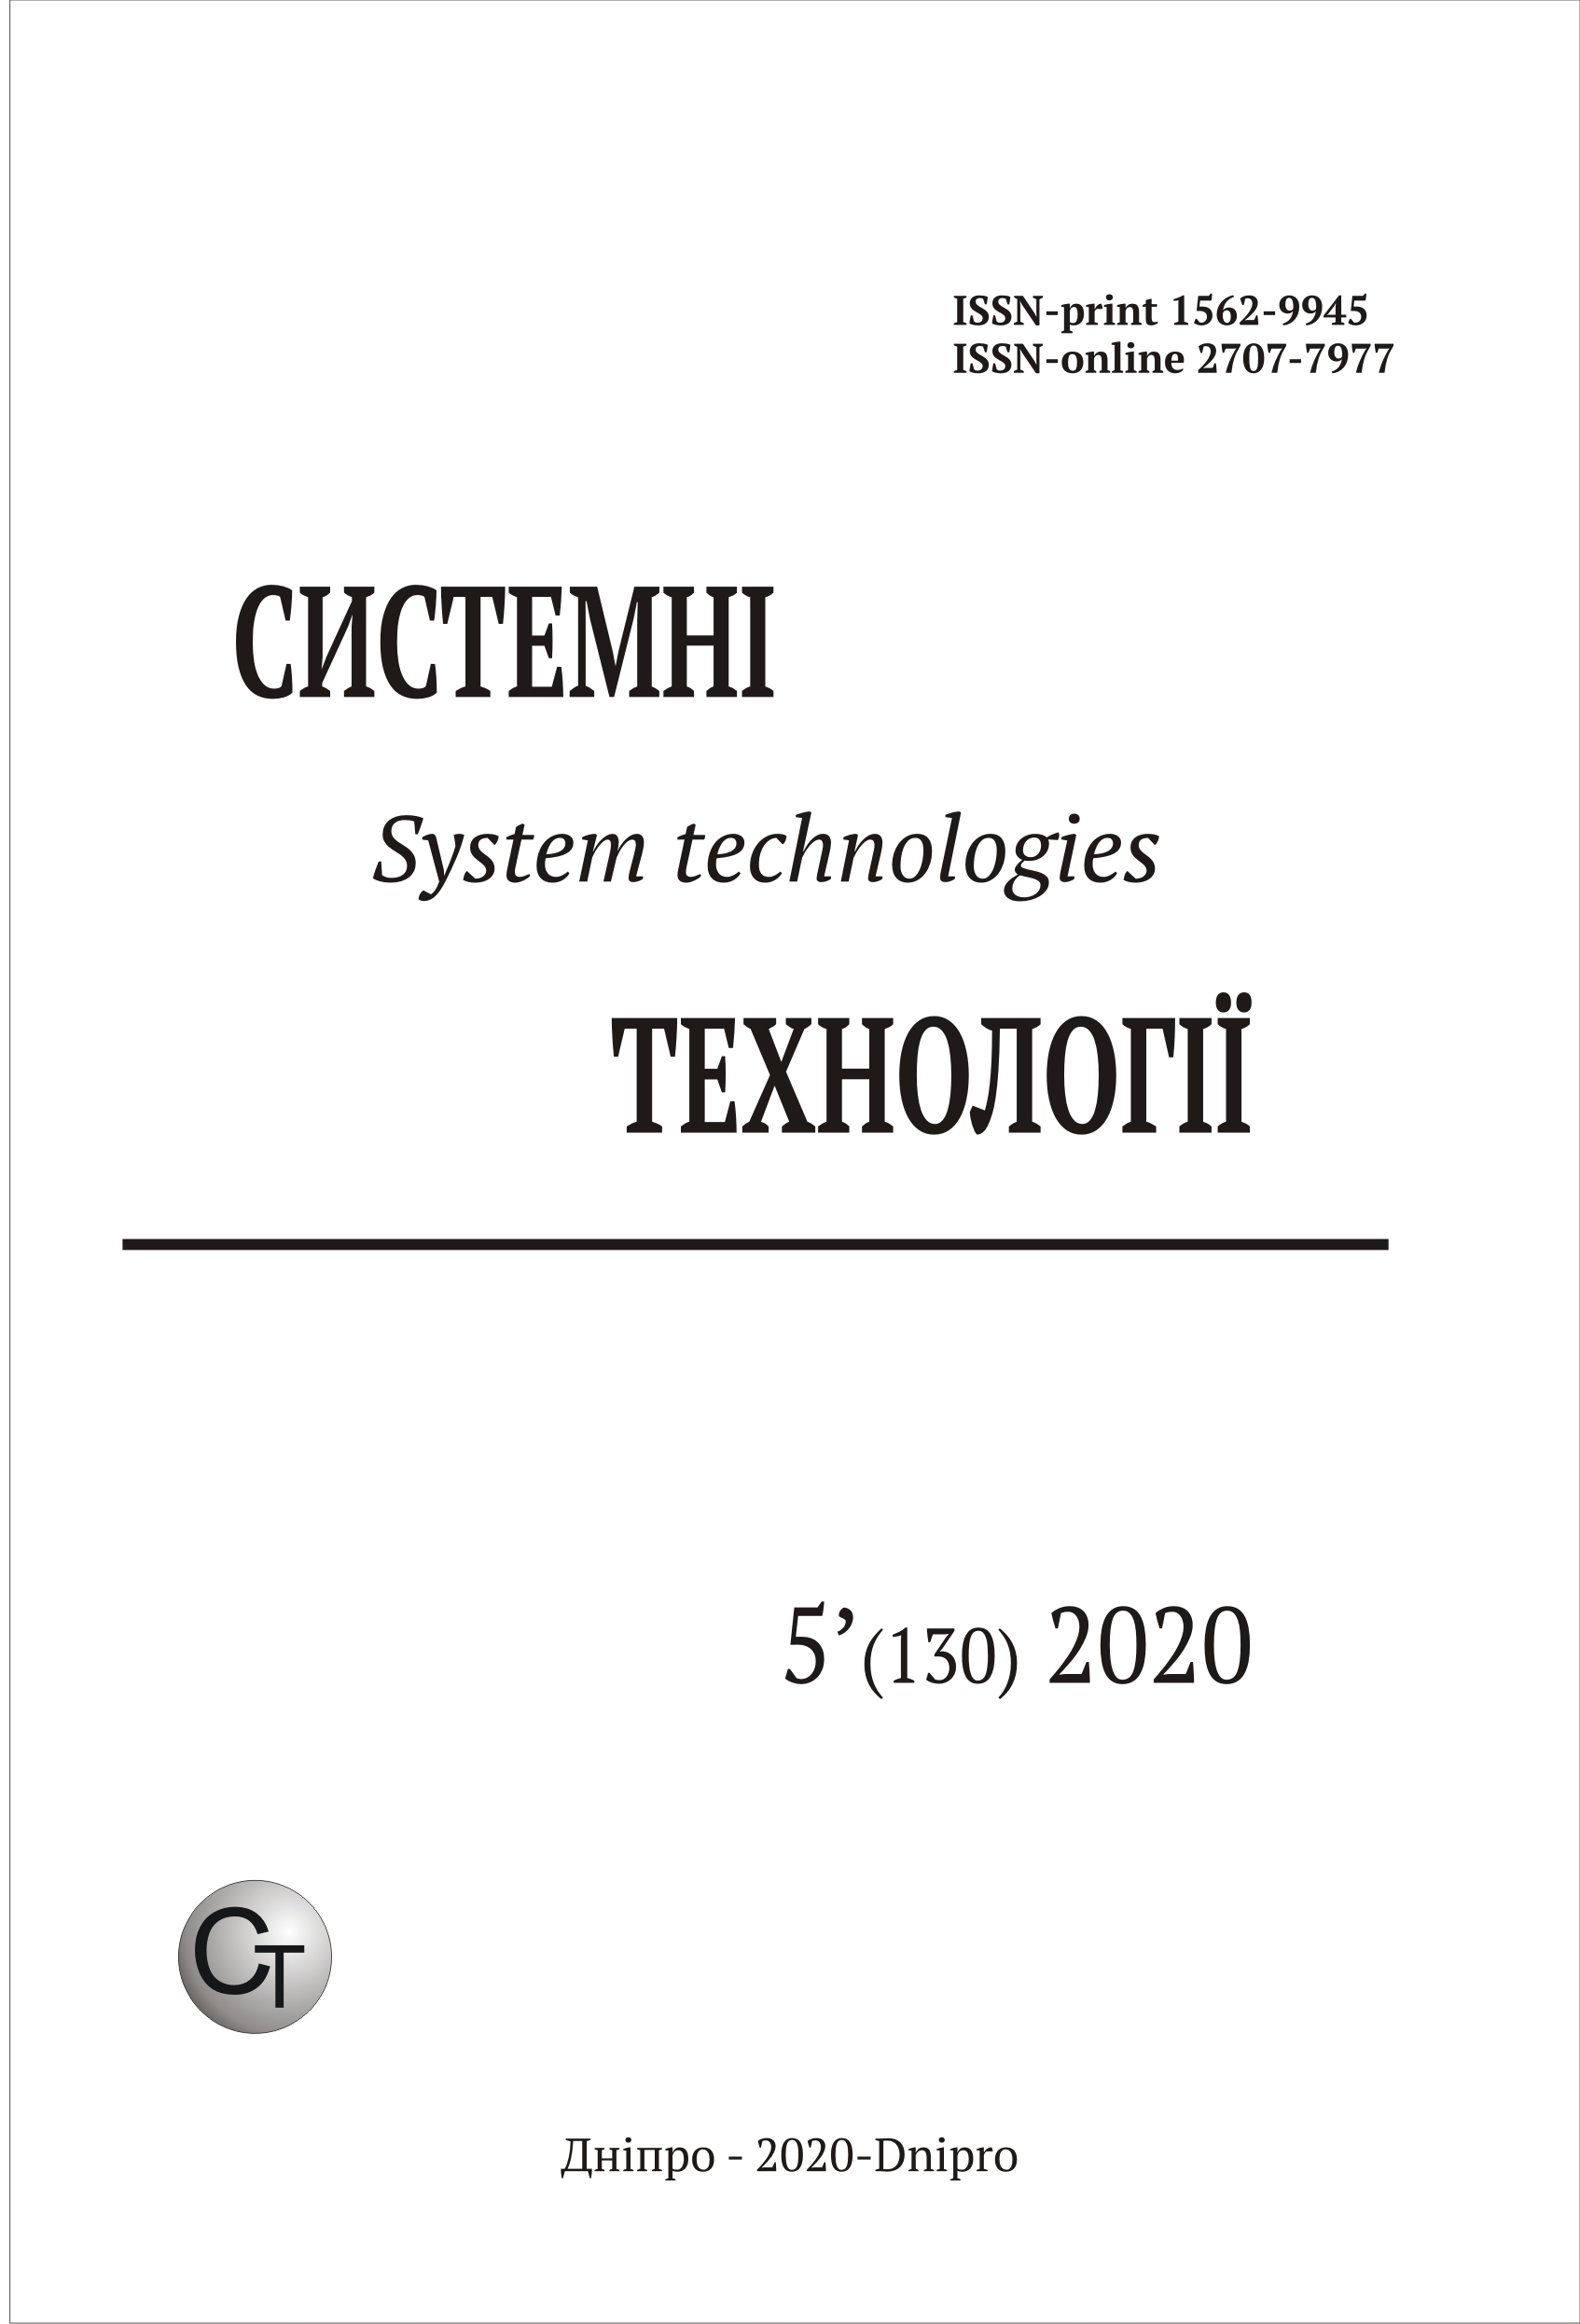 View Vol. 5 No. 130 (2020): System technologies